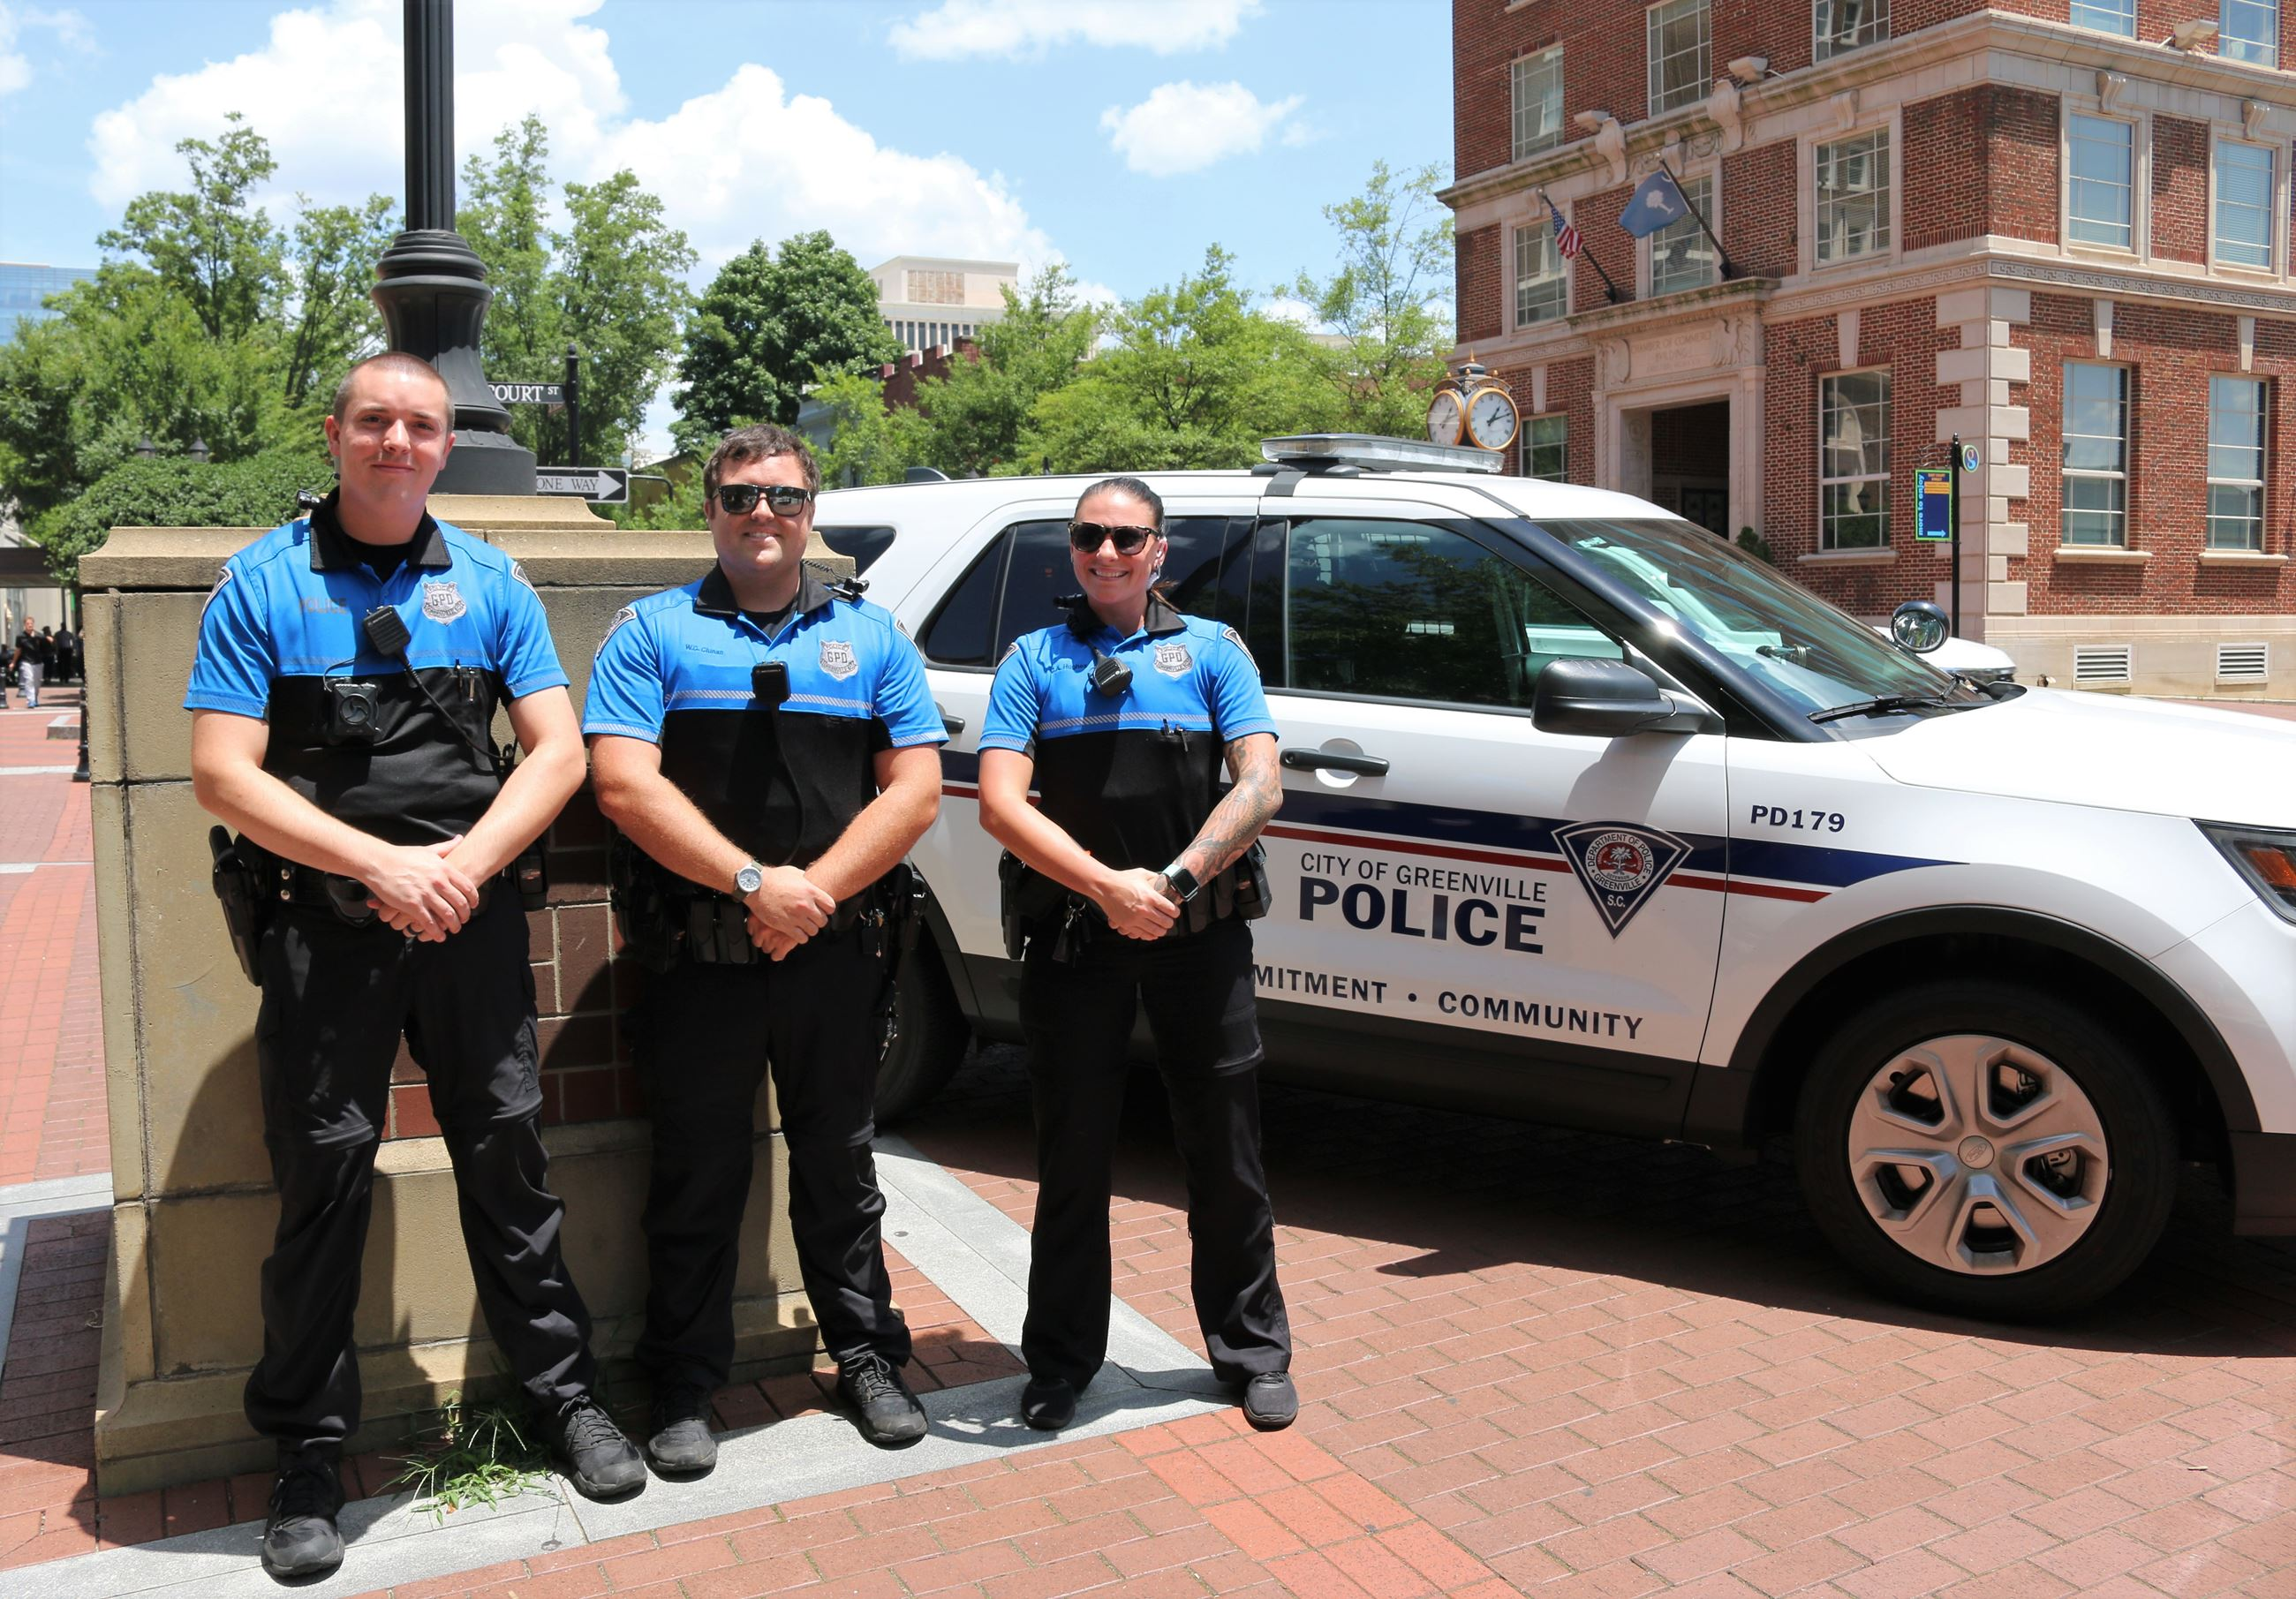 Police Department | Greenville, SC - Official Website